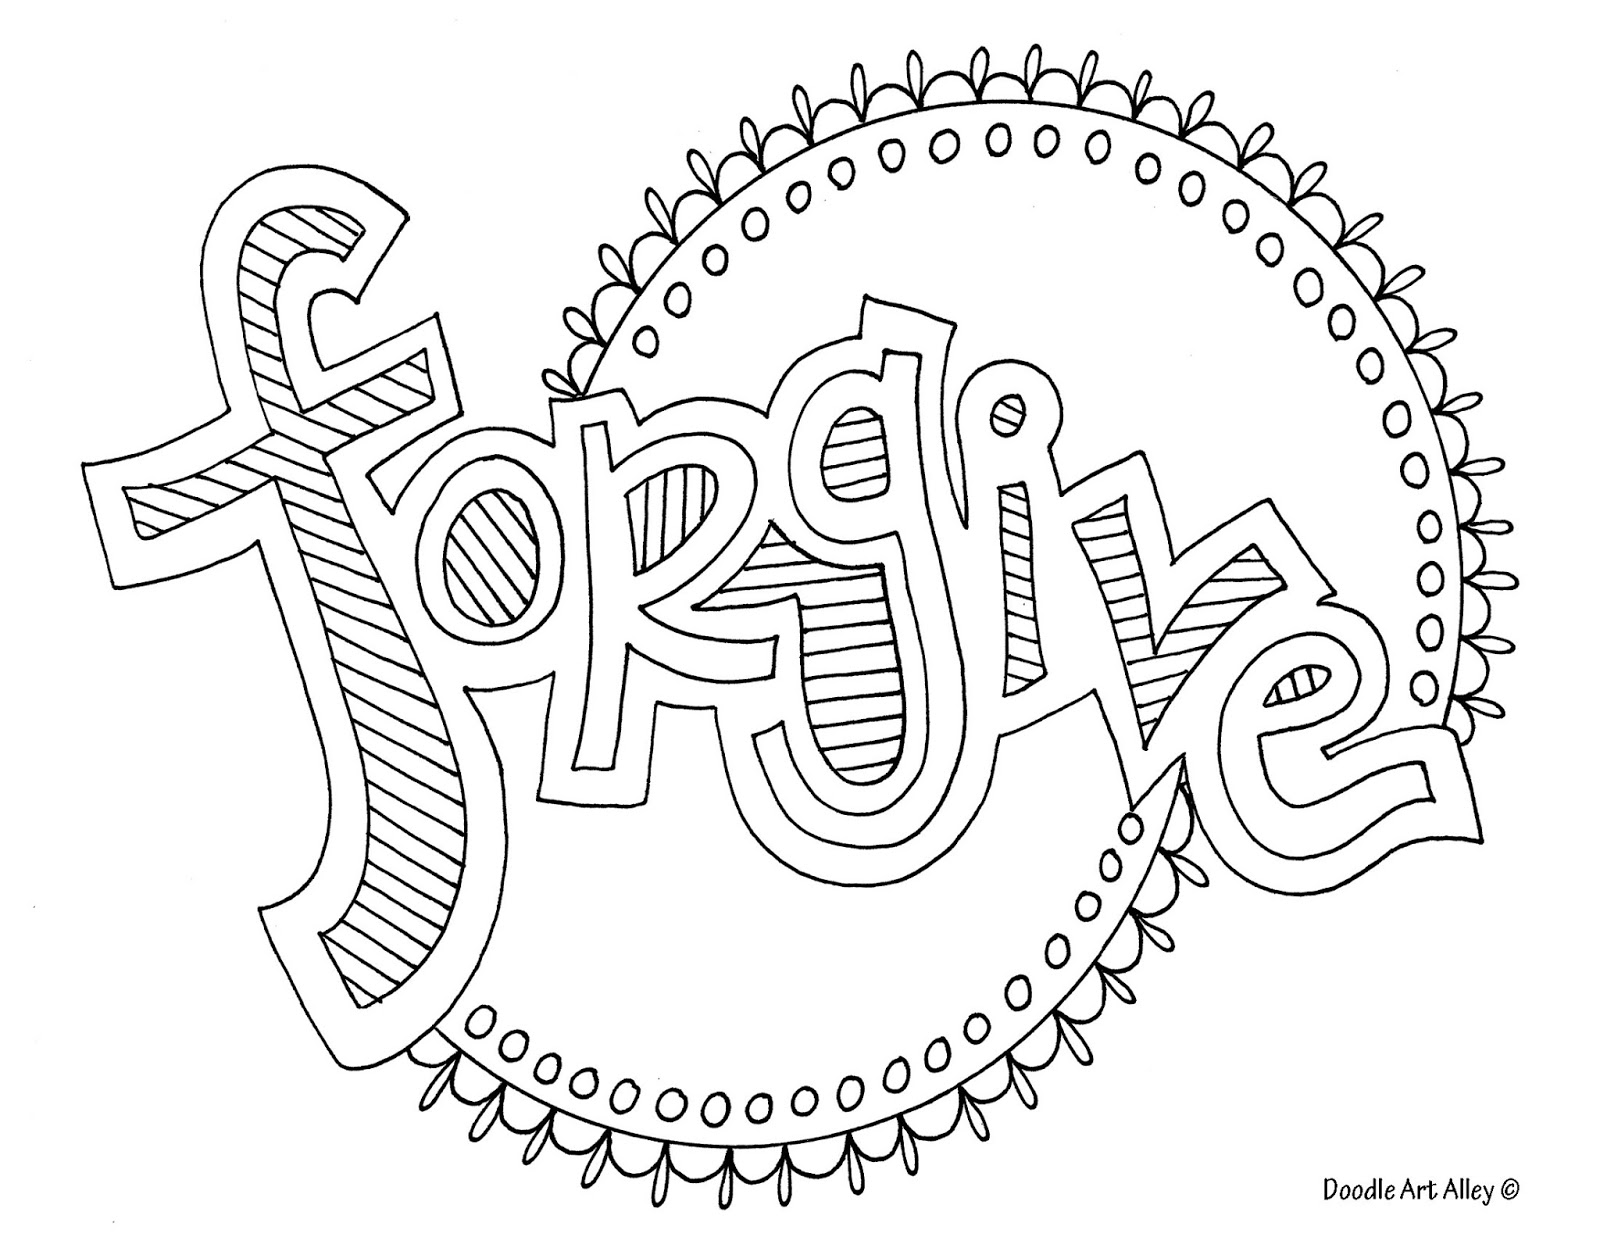 Coloring pages about forgiveness ~ Do You F.R.O.G ?: Kiss and Make Up with Forgiveness